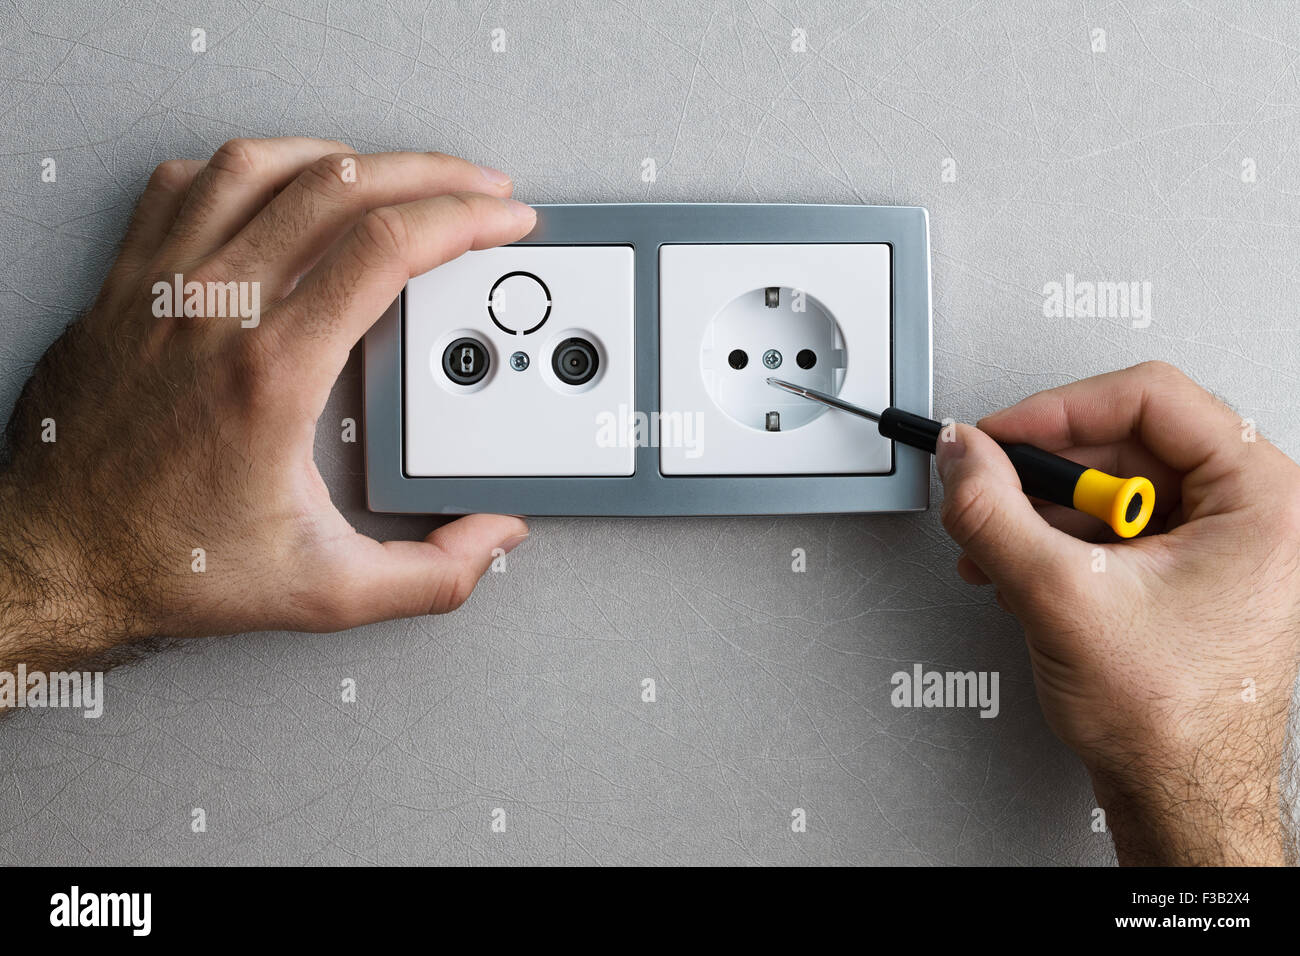 Wall Mounted Socket Stock Photos Images Wiring A Single Plug Uk Installing Silver Ac Power With Screwdriver On Grey